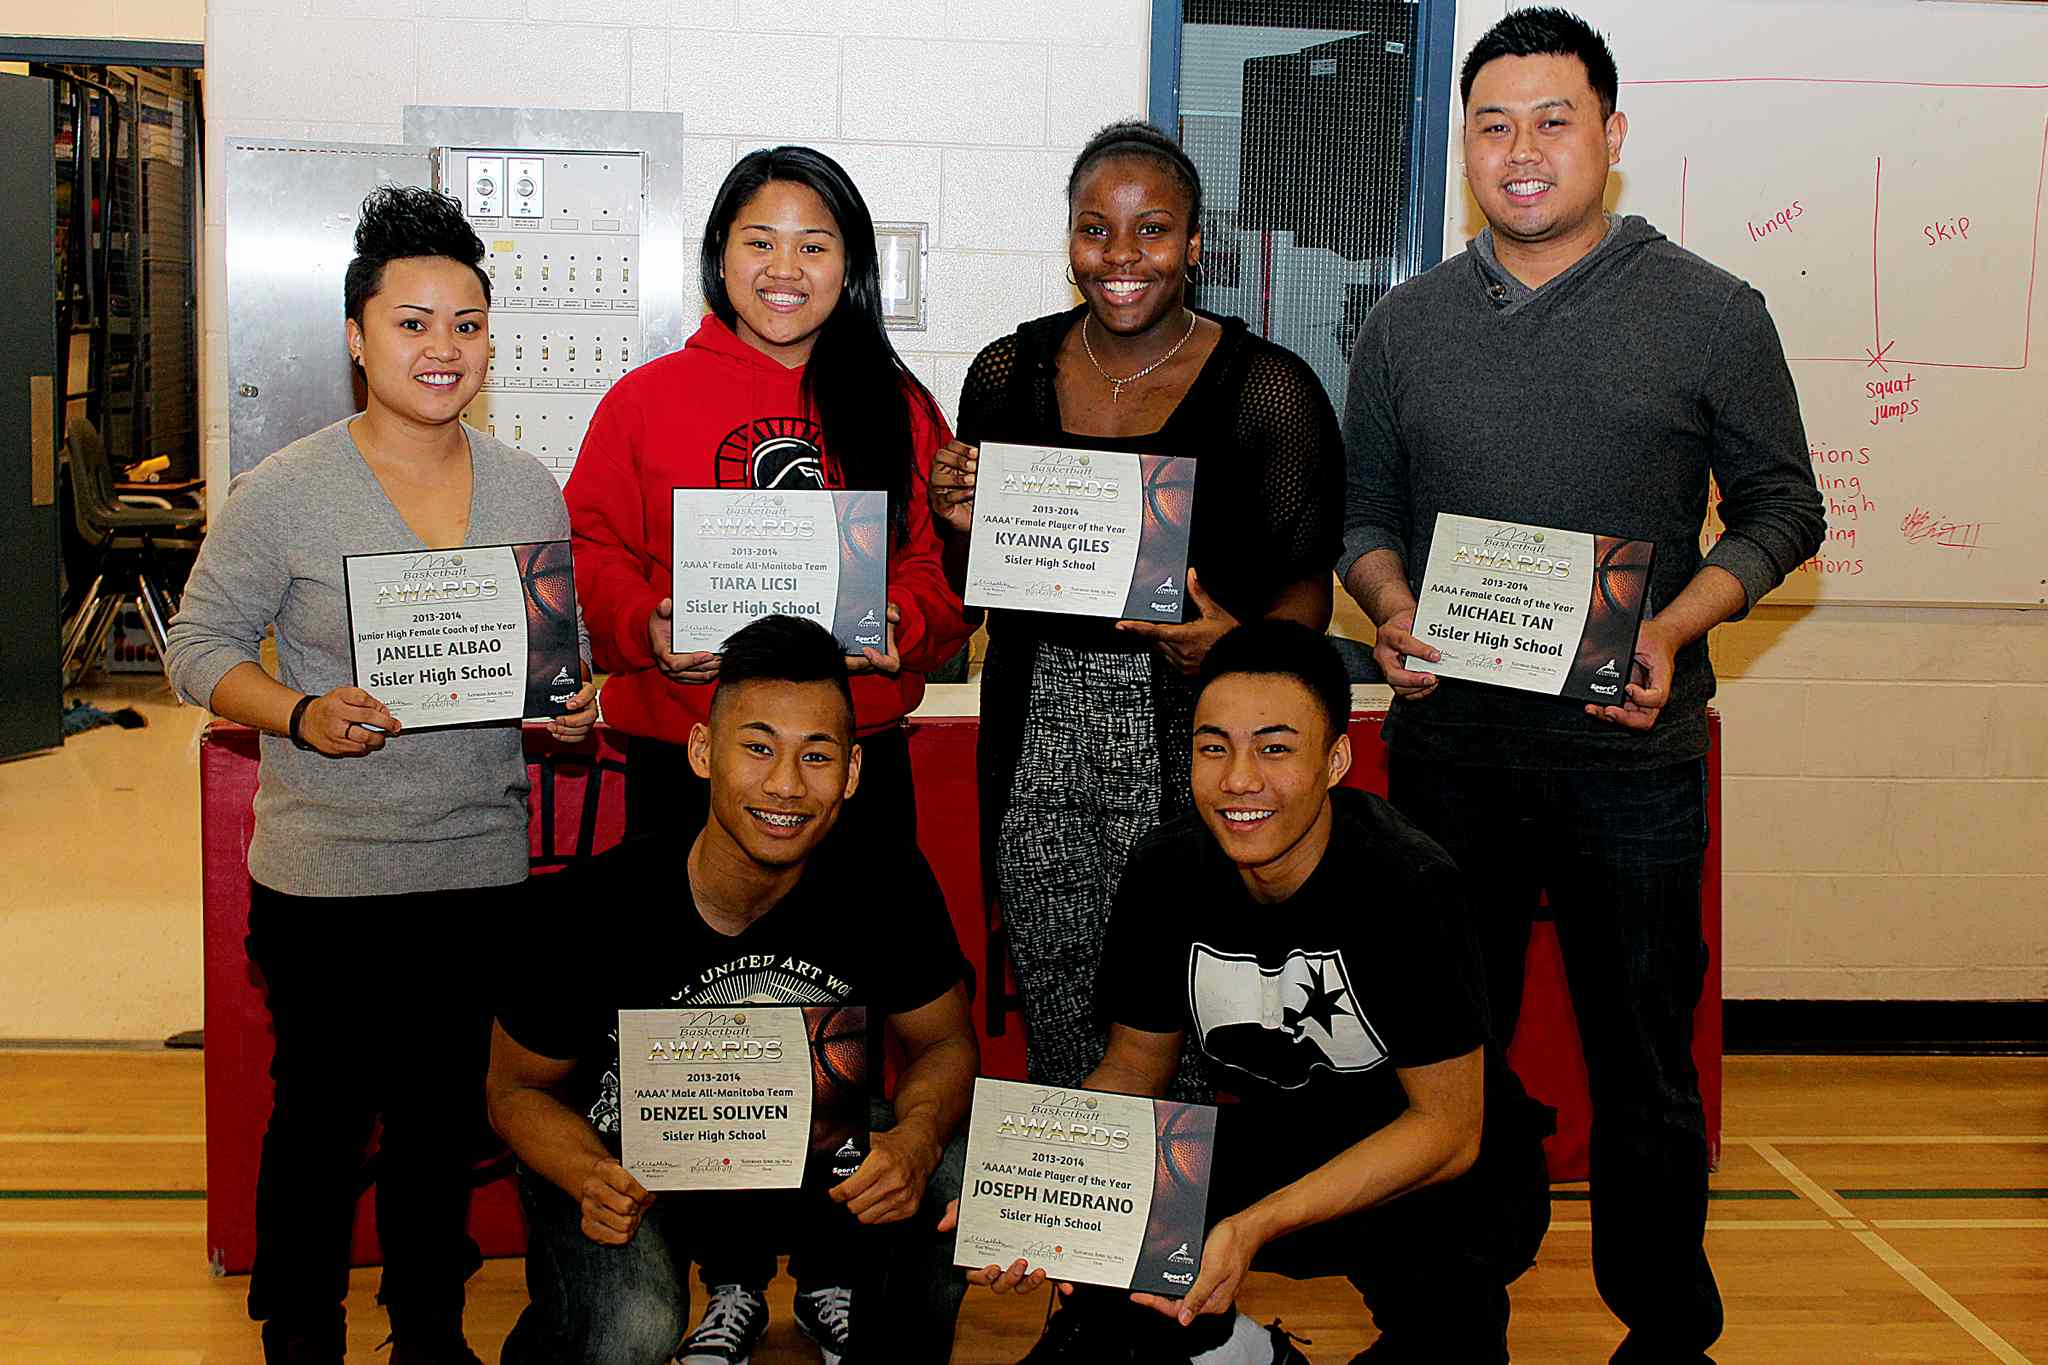 Sisler High School dominated the 2014 Basketball Manitoba Awards. (Top row, from left) Coach of the Year (junior high) Janelle Ablao, AAAA Female All-Manitoba Team selection Tiara Licsi, AAAA Female Player of the Year Kyanna Giles, AAAA coach of the year (for varsity girls basketball) Michael Tan. Bottom row, from left: AAAA Male All-Manitoba Team selection Denzel Soliven and AAAA Male Player of the Year Joseph Medrano.